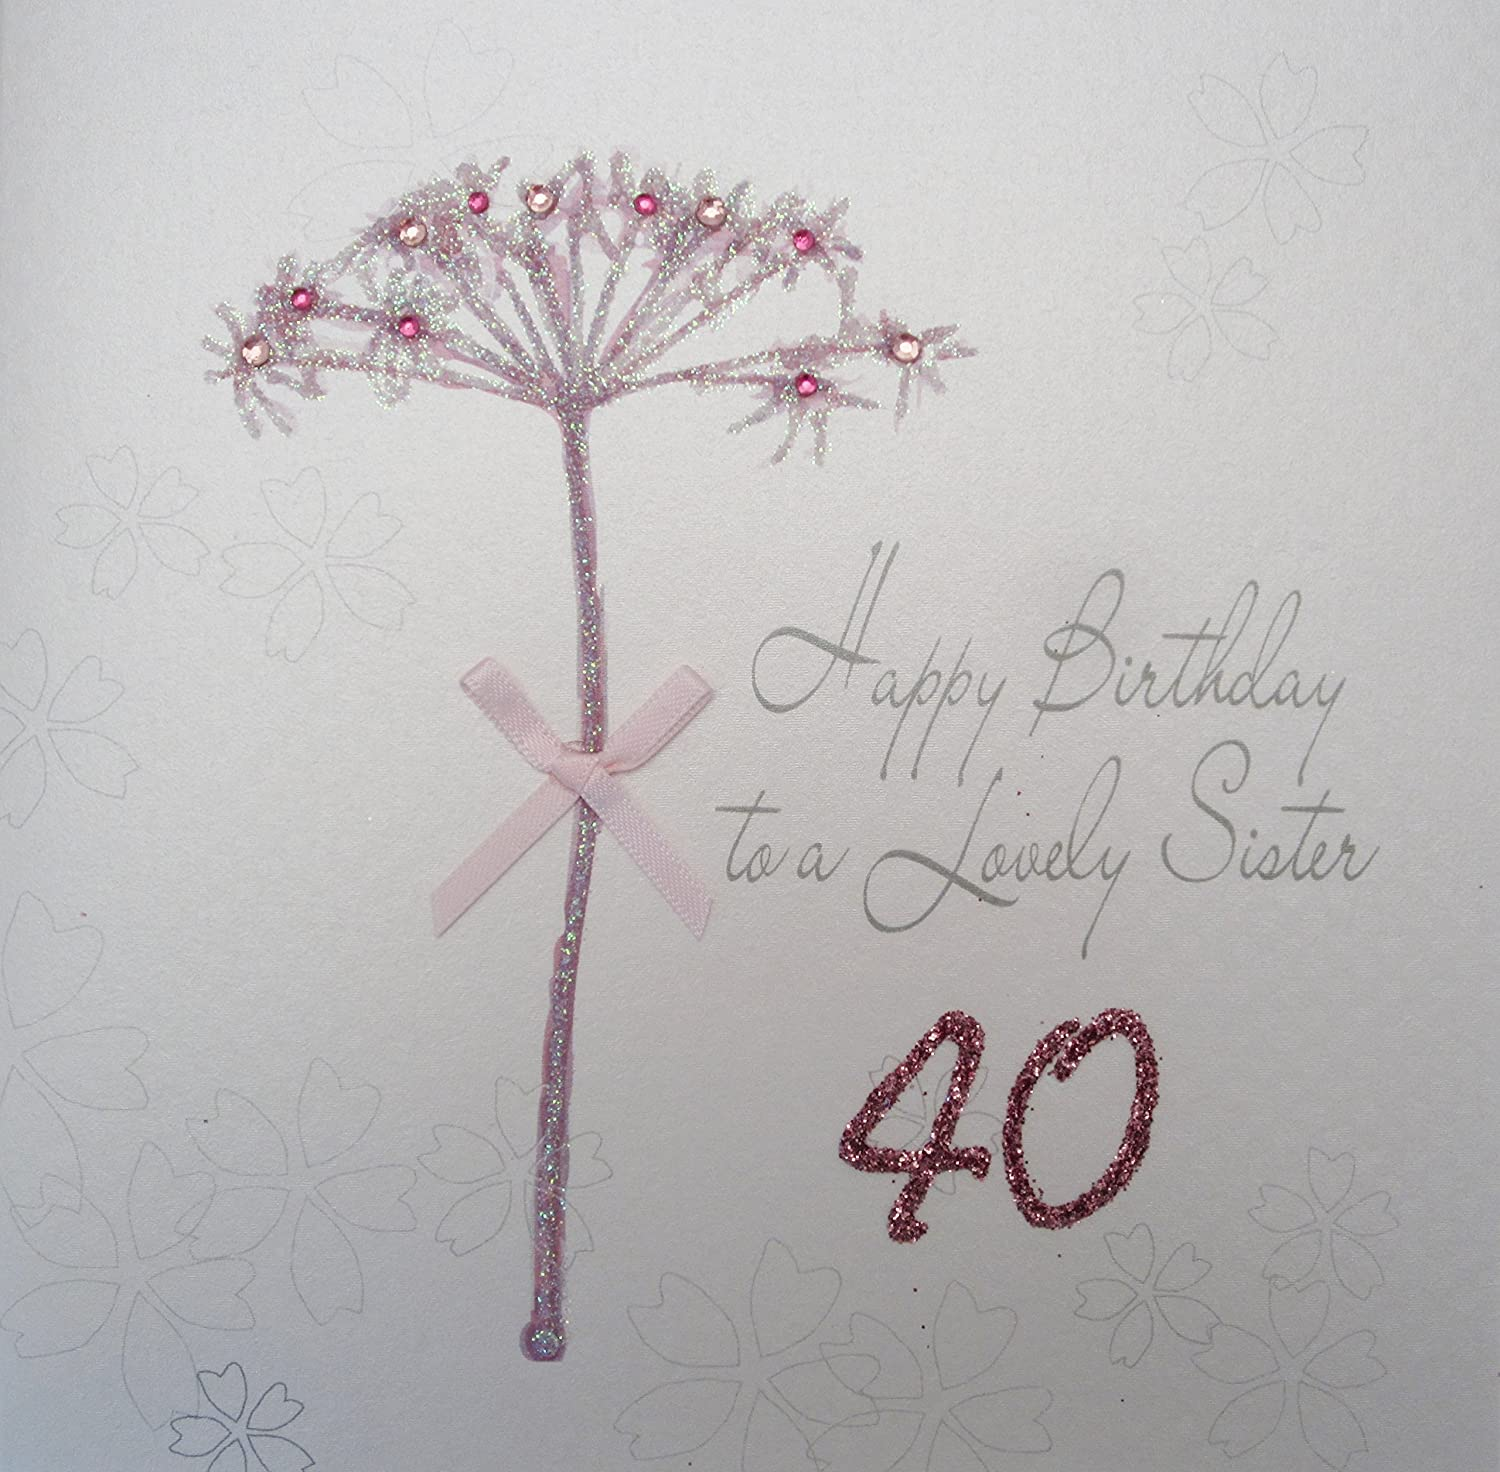 White cotton cards bd65 40 dandelion happy birthday to a lovely white cotton cards bd65 40 dandelion happy birthday to a lovely sister 40 handmade 40th birthday card white amazon kitchen home bookmarktalkfo Choice Image